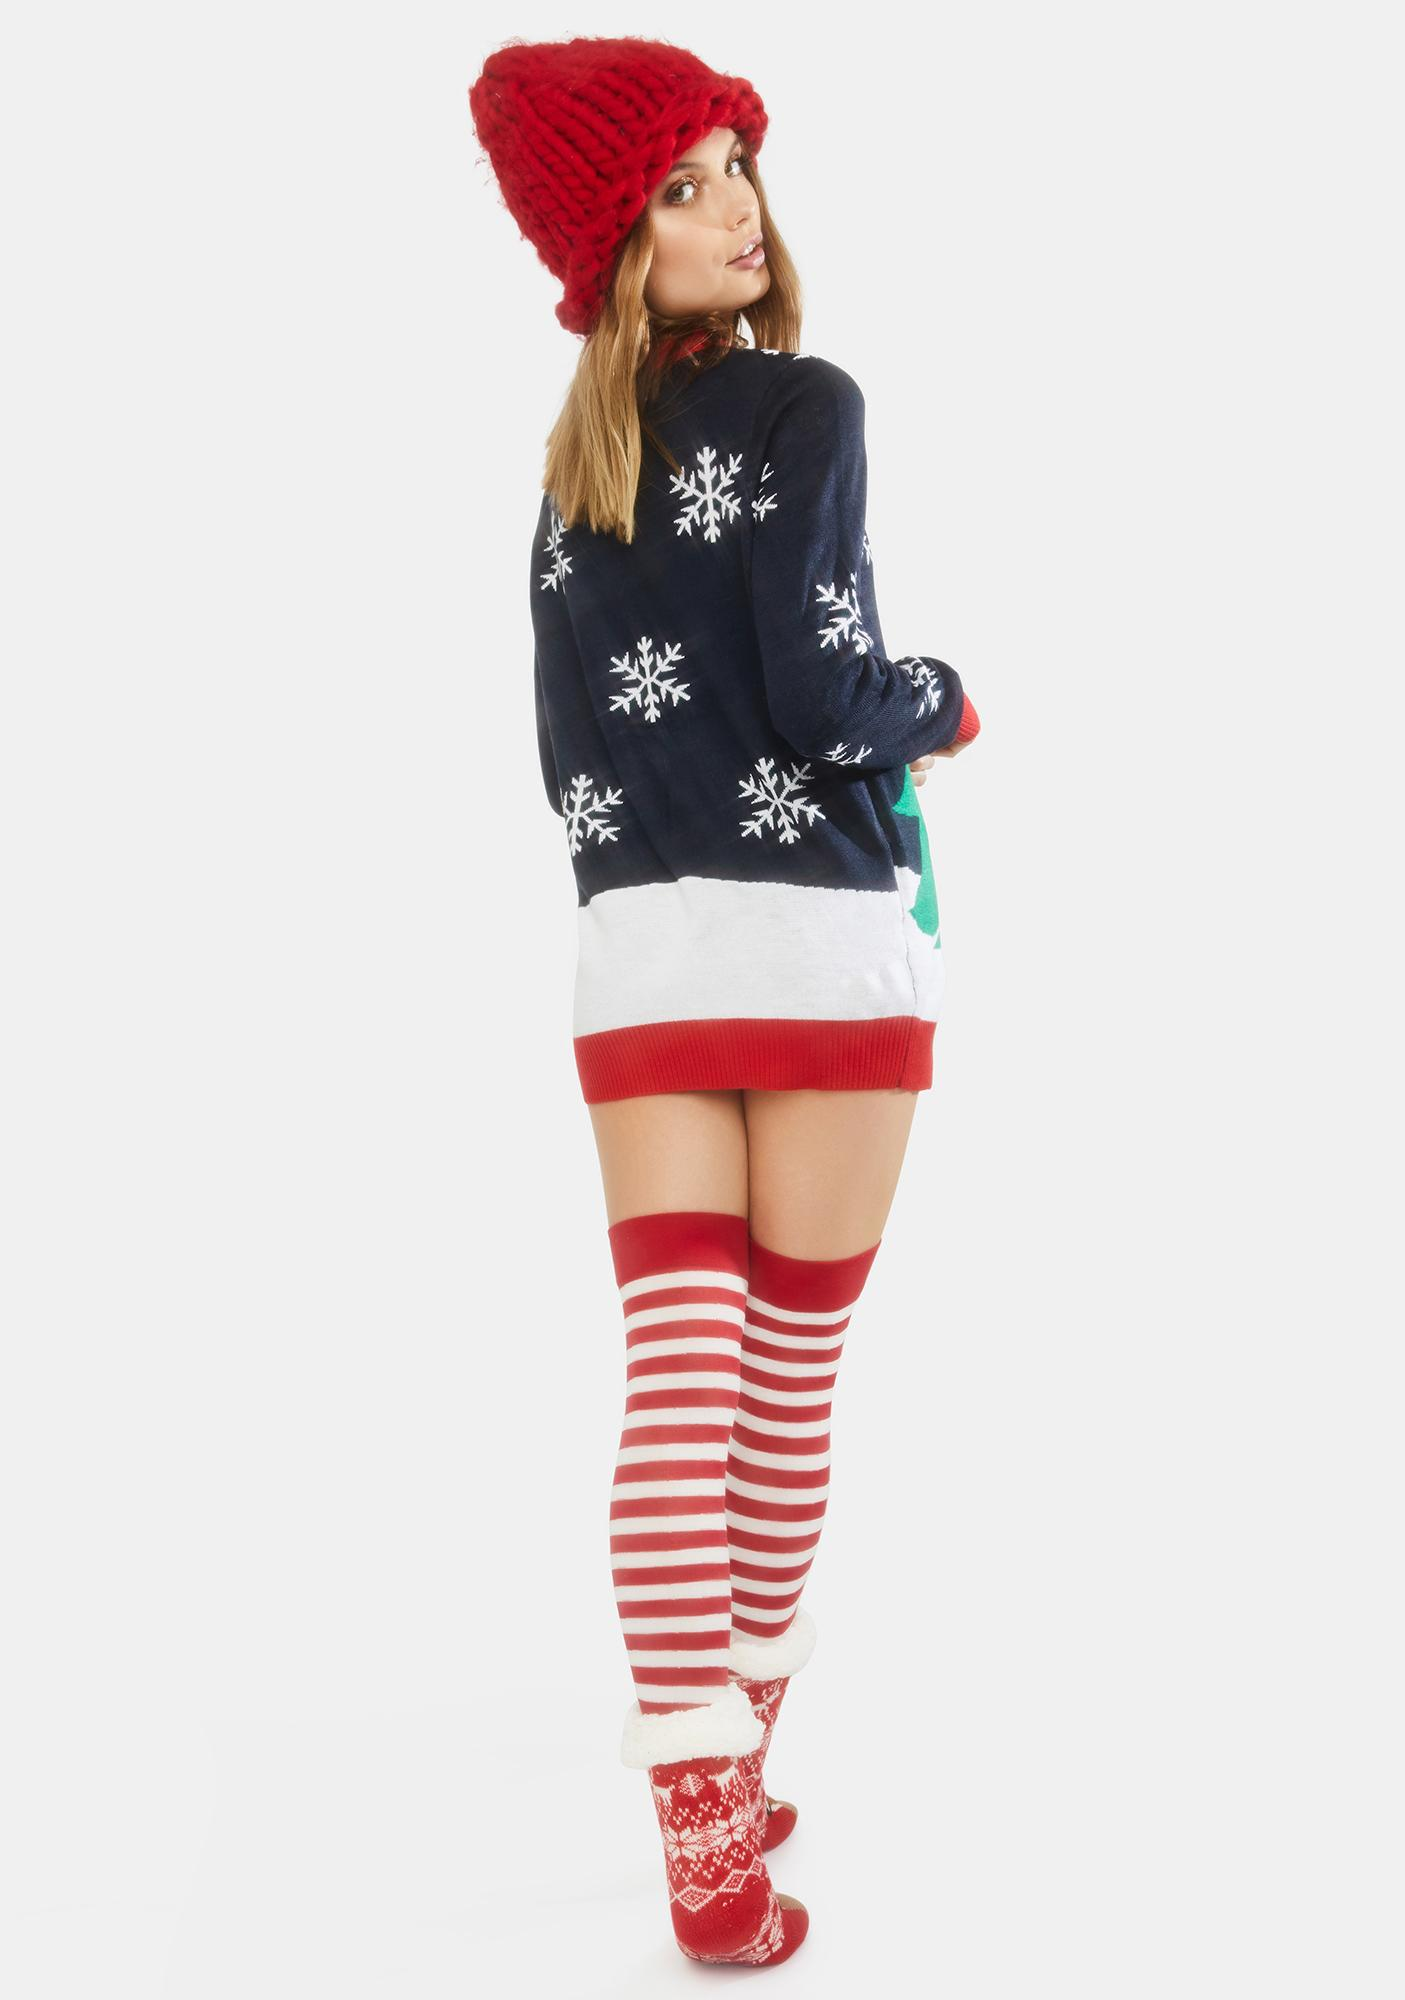 Tipsy Elves Winter Whale Tail Holiday Sweater